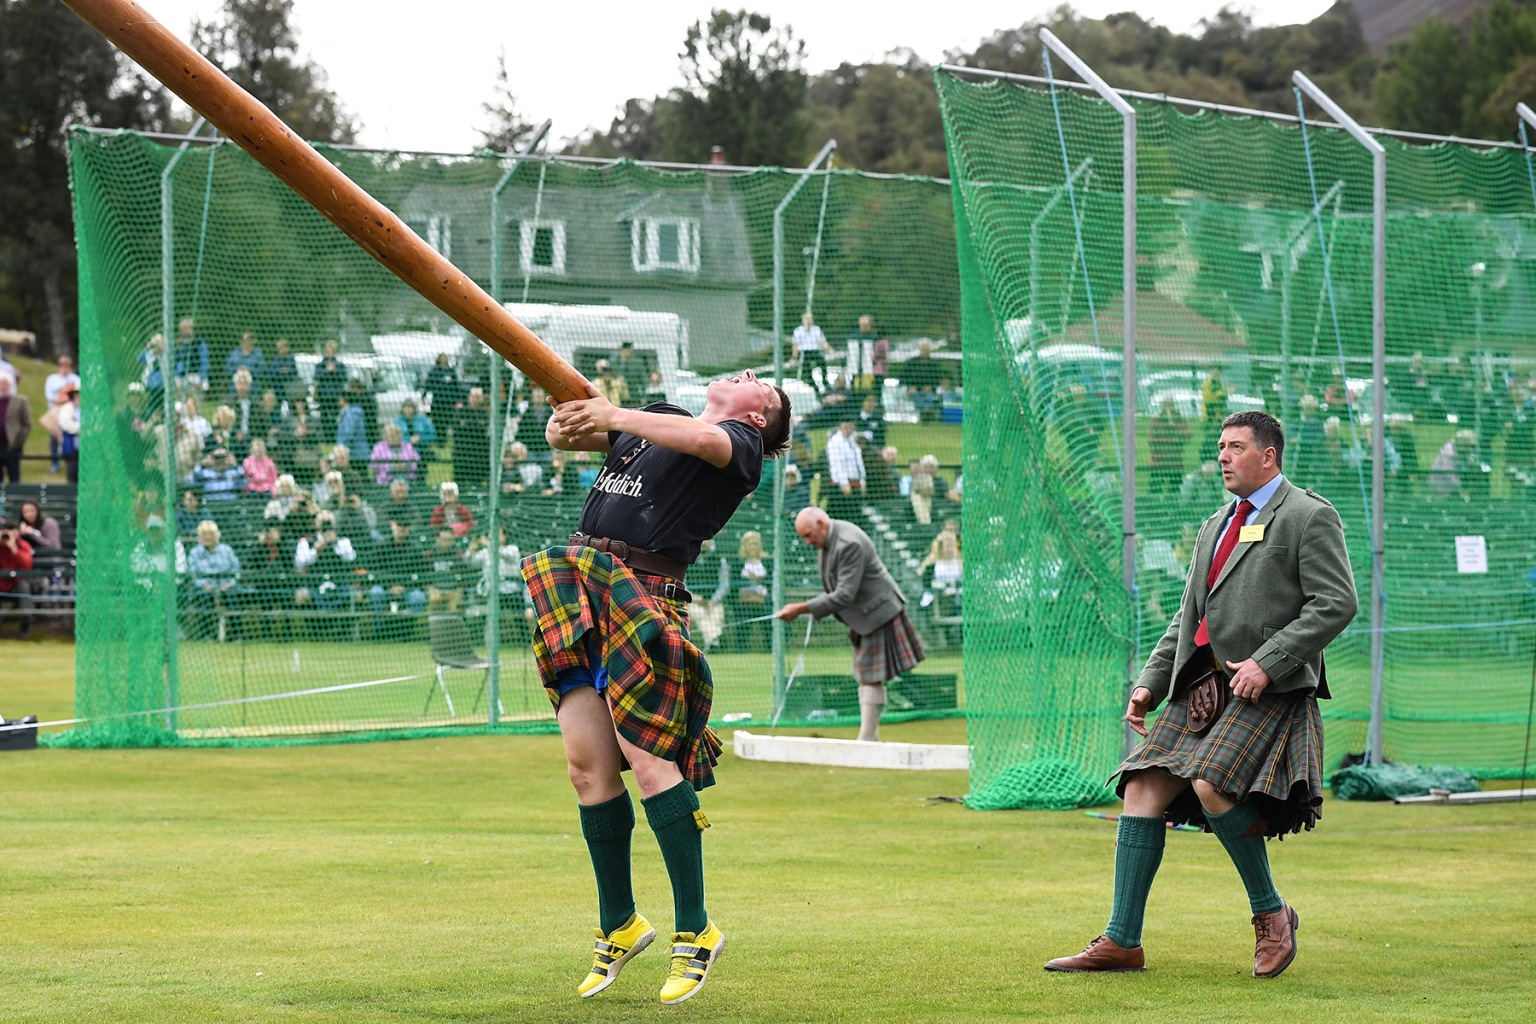 Competitors take part at the Braemer Highland Games at The Princess Royal and Duke of Fife Memorial Park in Braemar, Scotland, on Sept. 1. Each year thousands of visitors descend on this small village to watch one of the more colorful Scottish traditions. Jeff J Mitchell/Getty Images